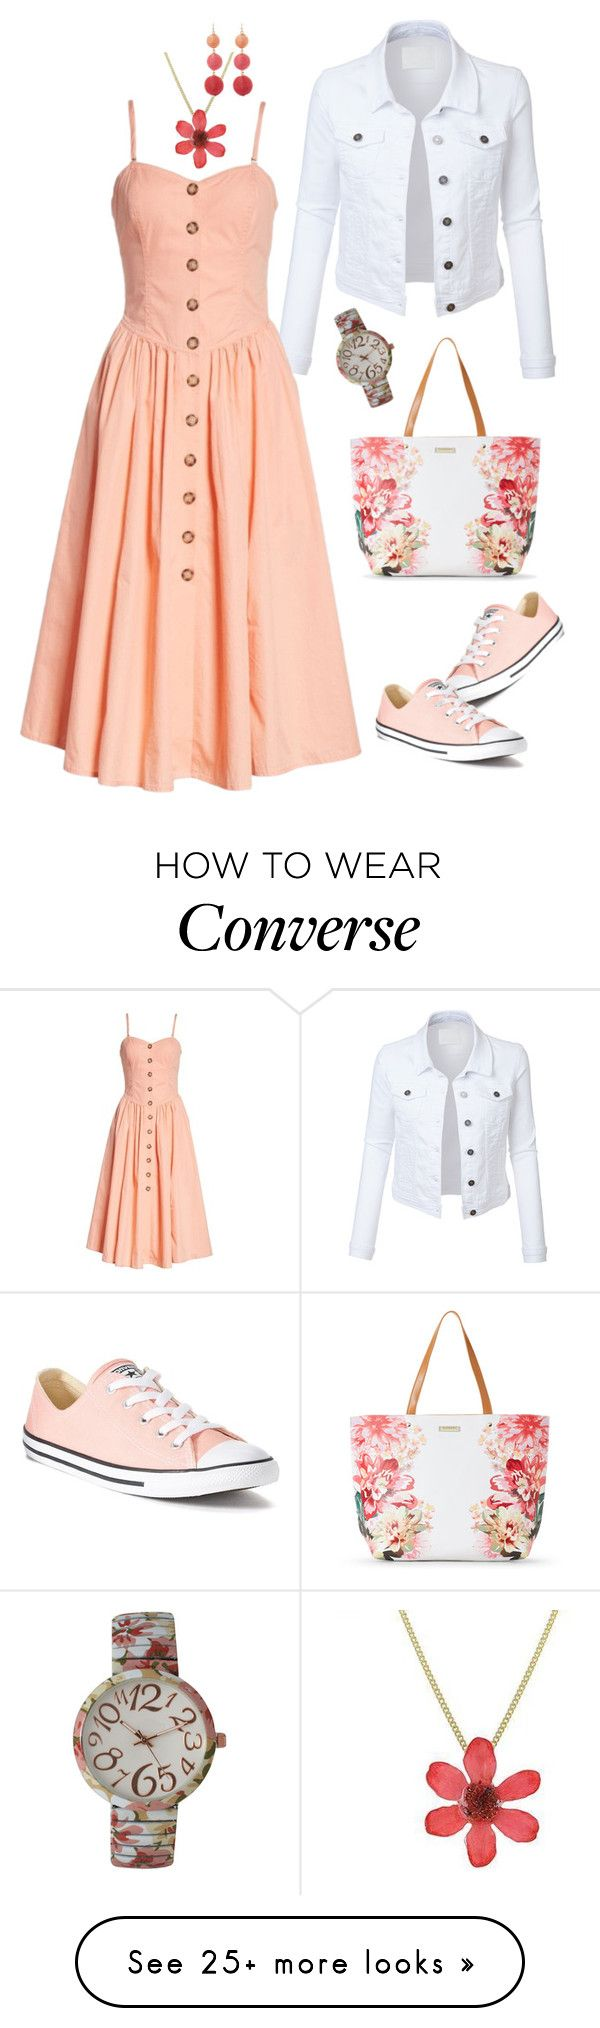 """""""Geen titel #859"""" by miriam-witte on Polyvore featuring LE3NO, Free People, Converse, Tahari, NOVICA, Kenneth Jay Lane and Olivia Pratt"""